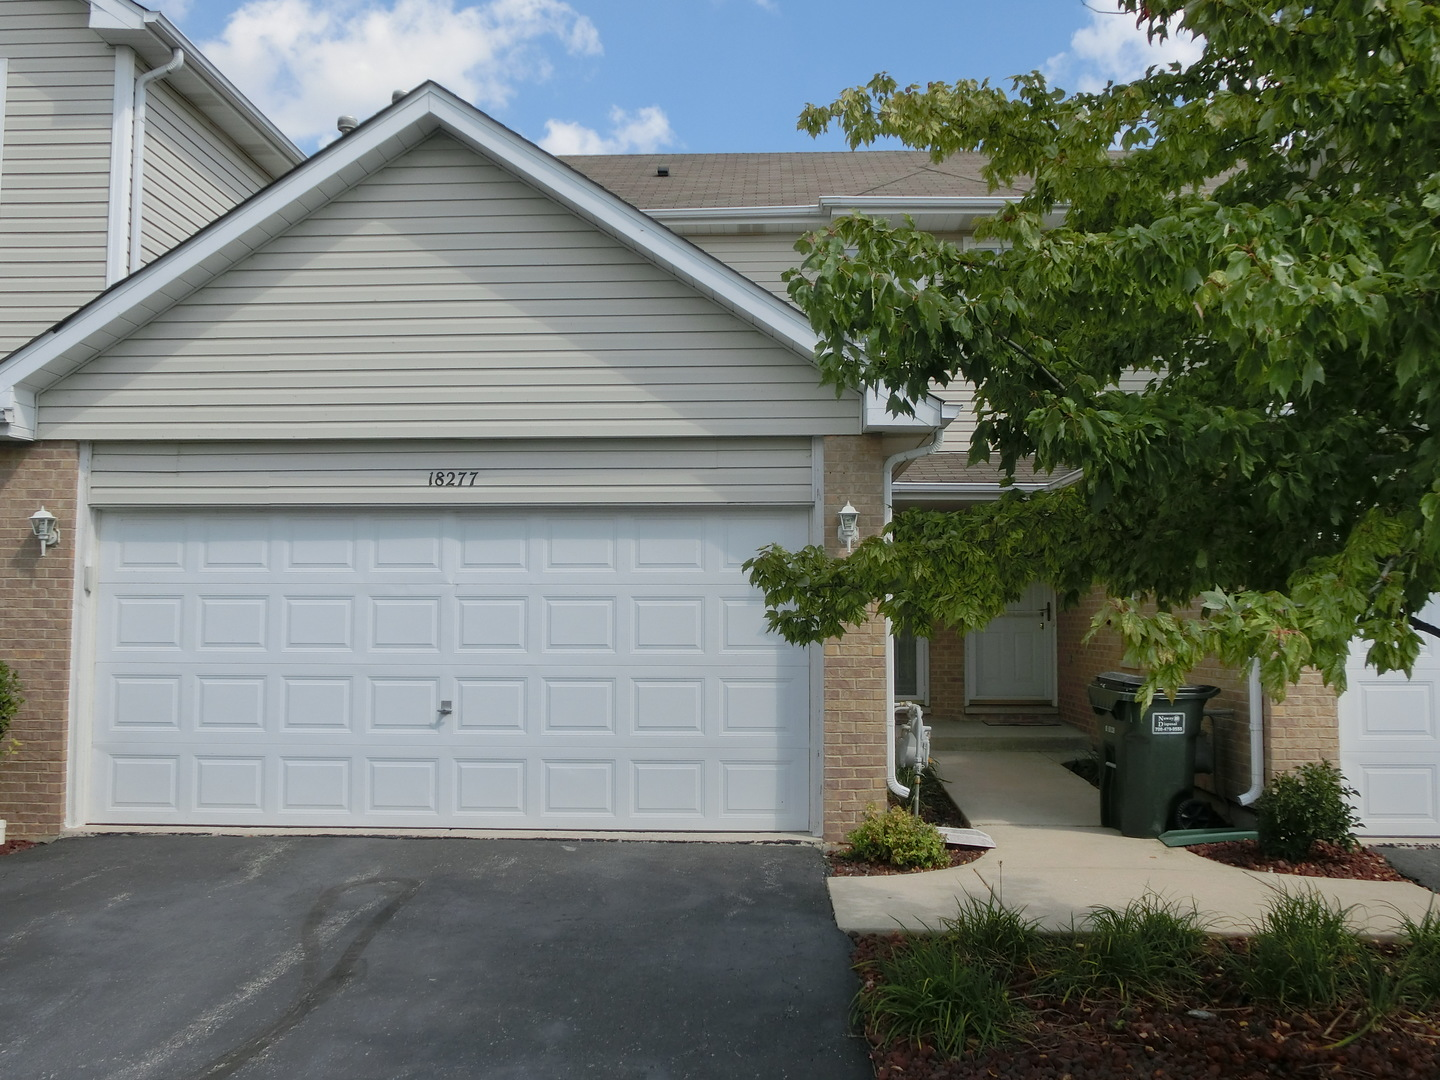 Photo of 18277 KIRBY Drive  TINLEY PARK  IL